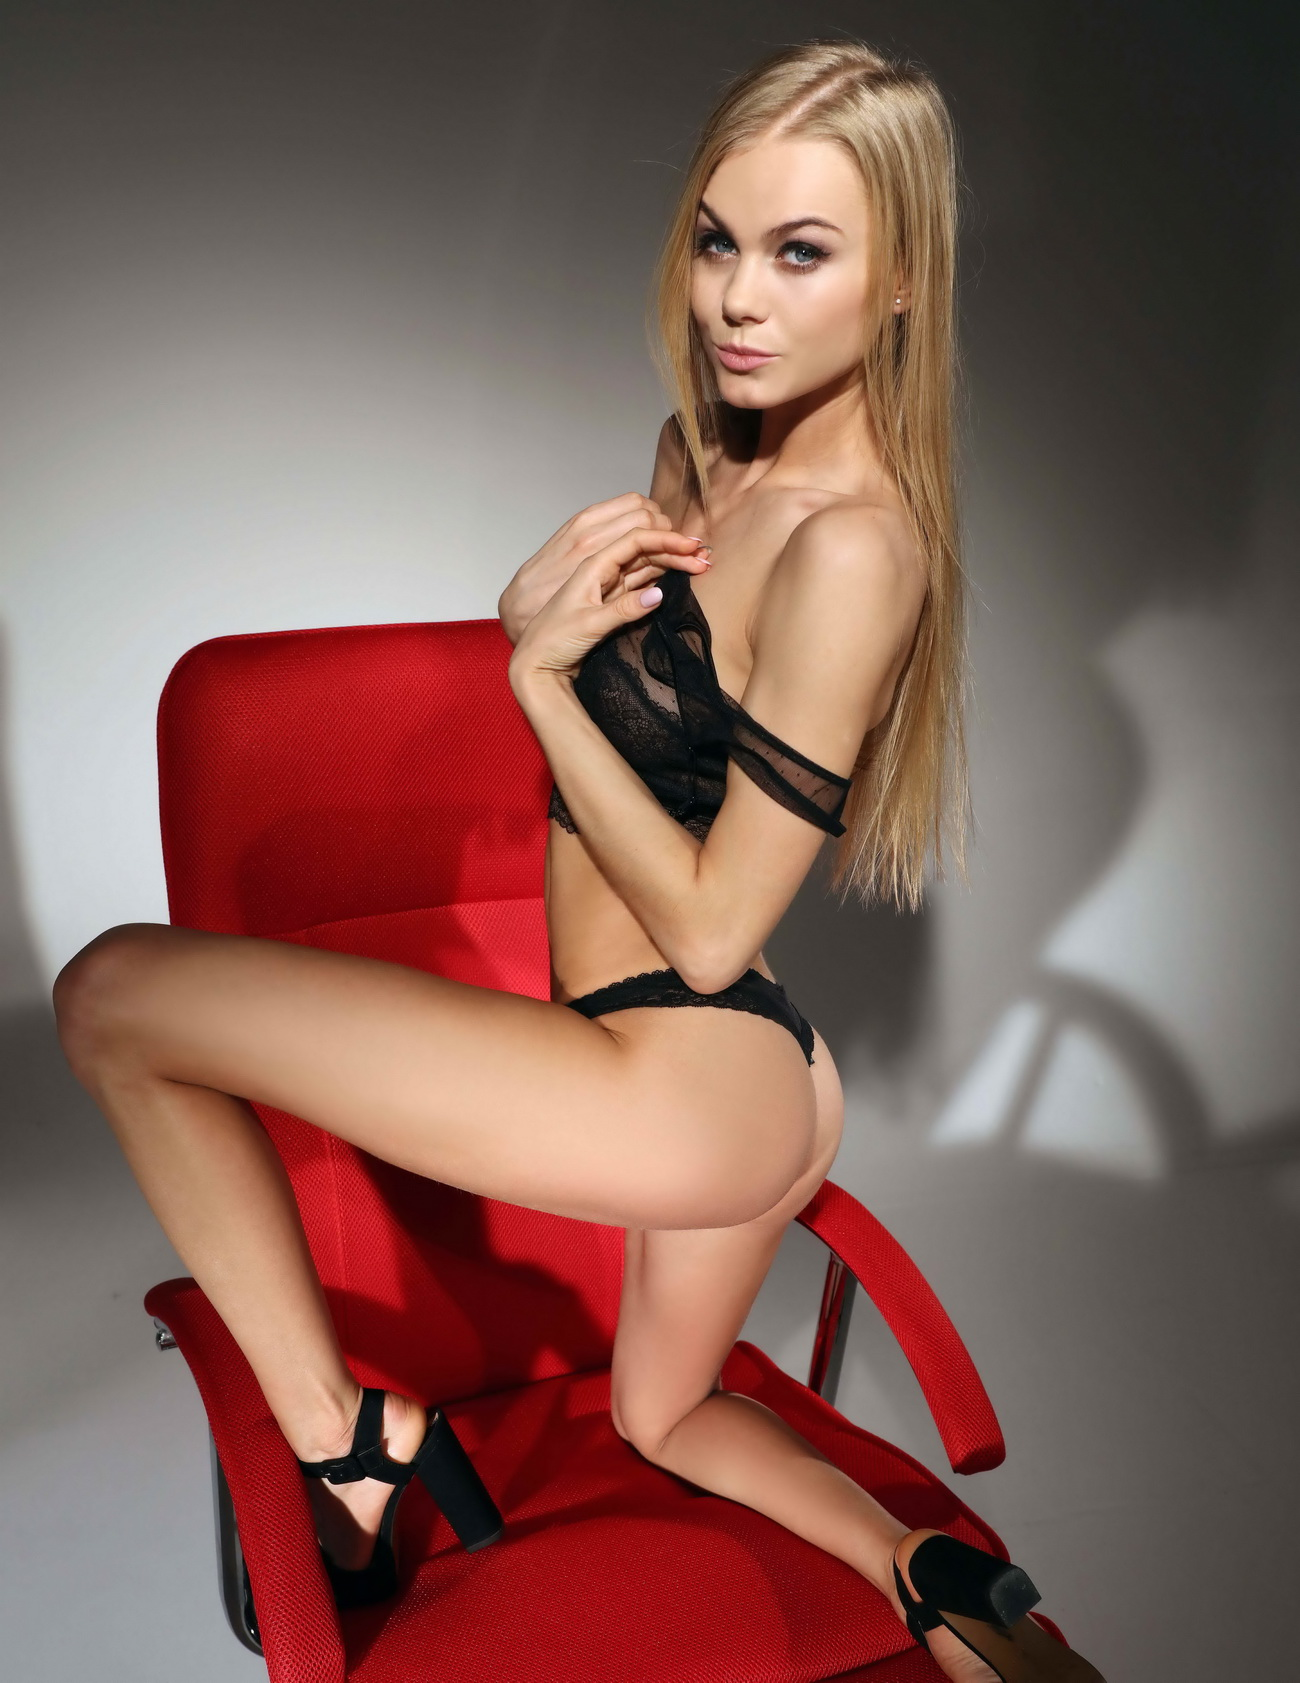 Skinny Babe From 123 London Escorts